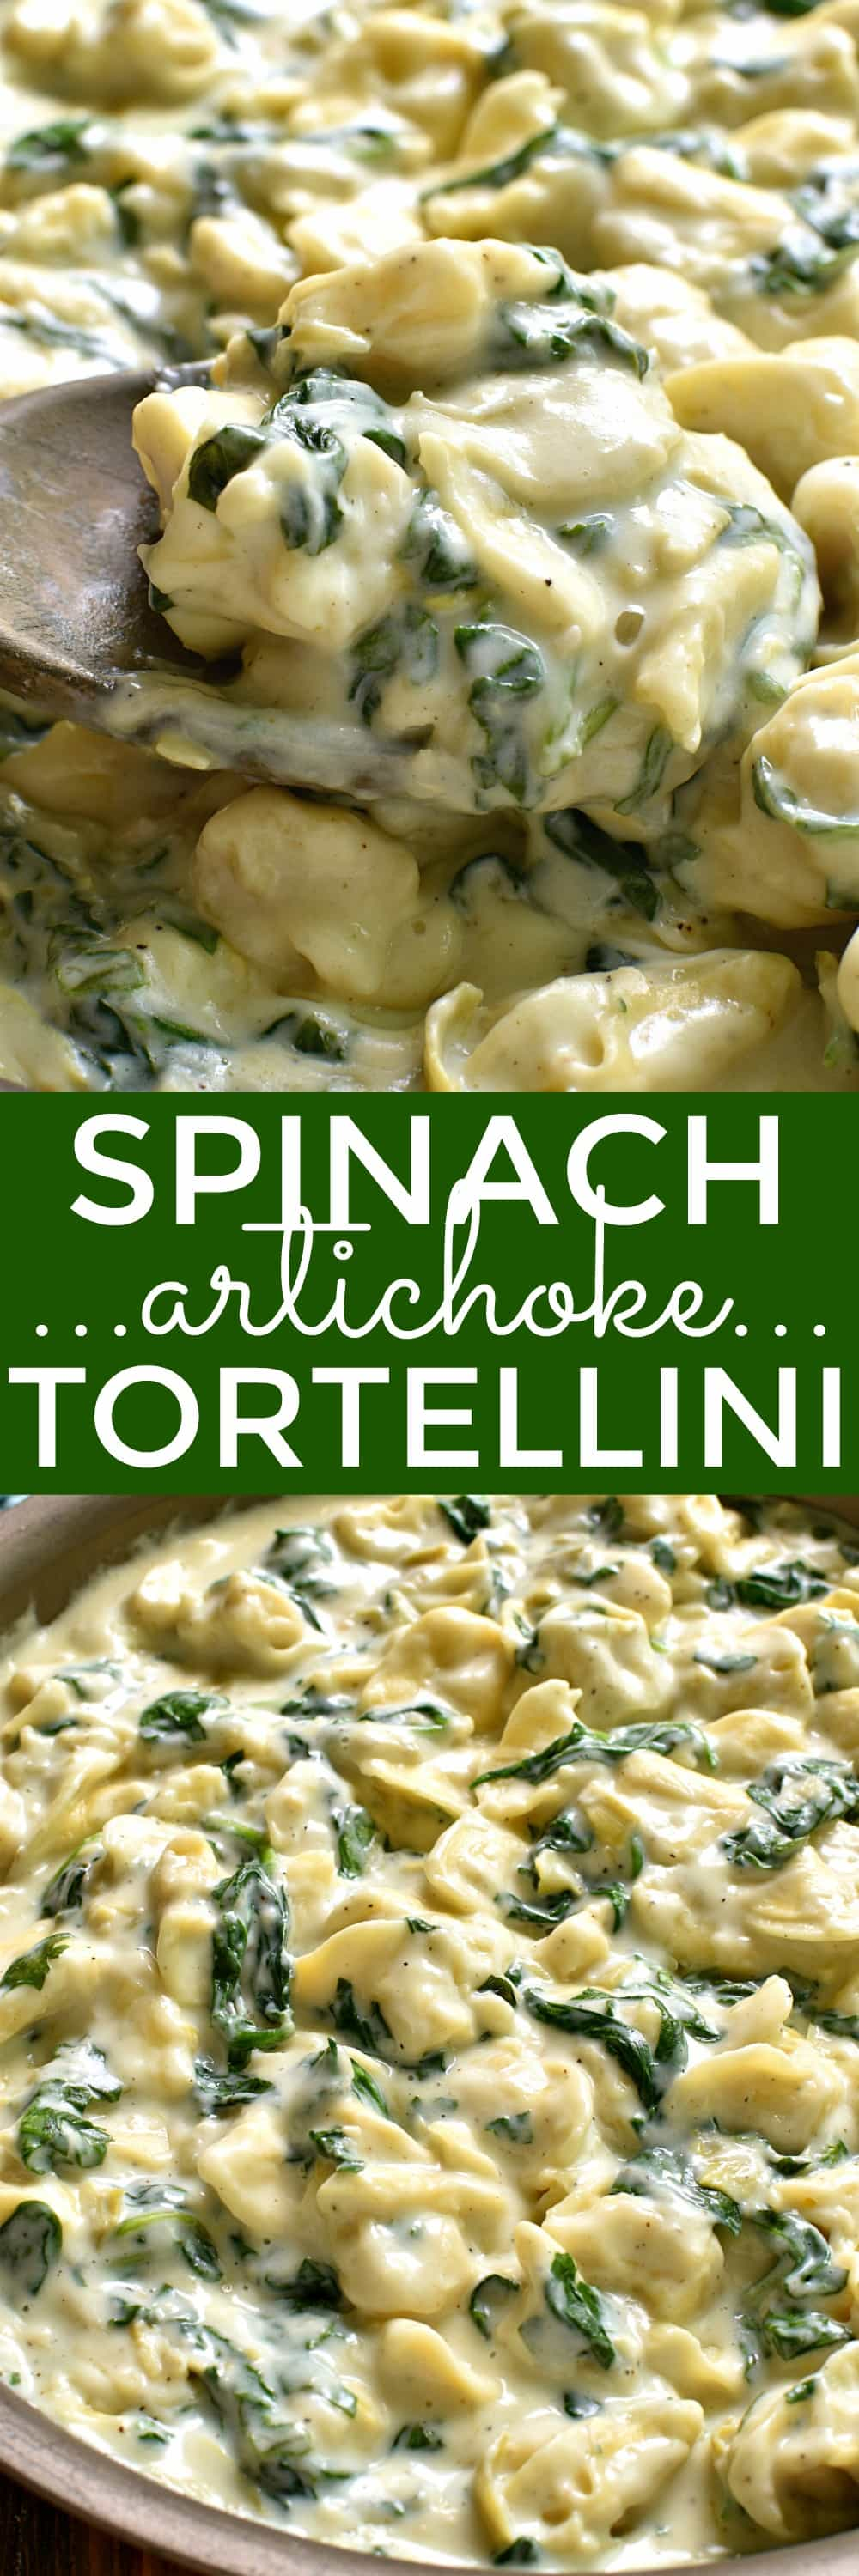 This Spinach Artichoke Tortellini is a pasta lover's dream! Rich, creamy, and loaded with cheesy goodness...this is one family dinner everyone will LOVE. And ready in just 20 minutes or less!